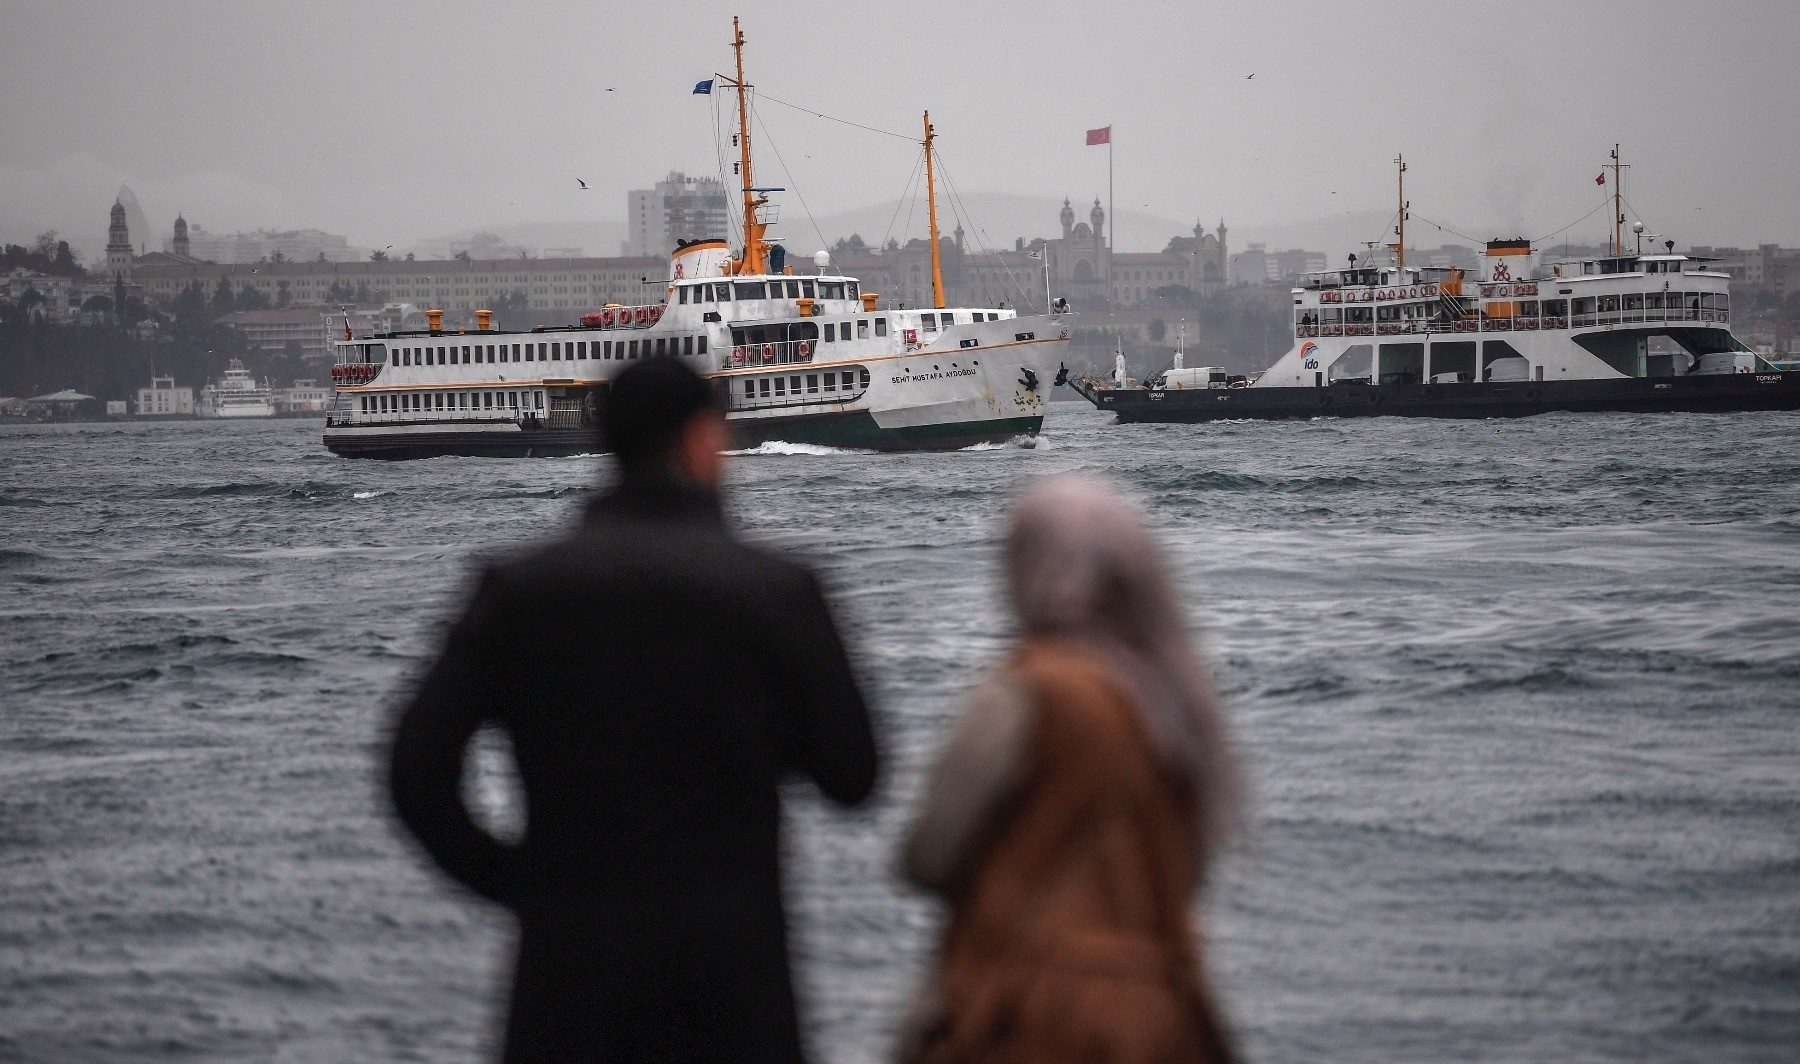 A Turkish couple awaits a ferryboat near the Bosporus strait on a rainy and windswept morning in the Karaku00f6y district of Istanbul, Jan. 11.